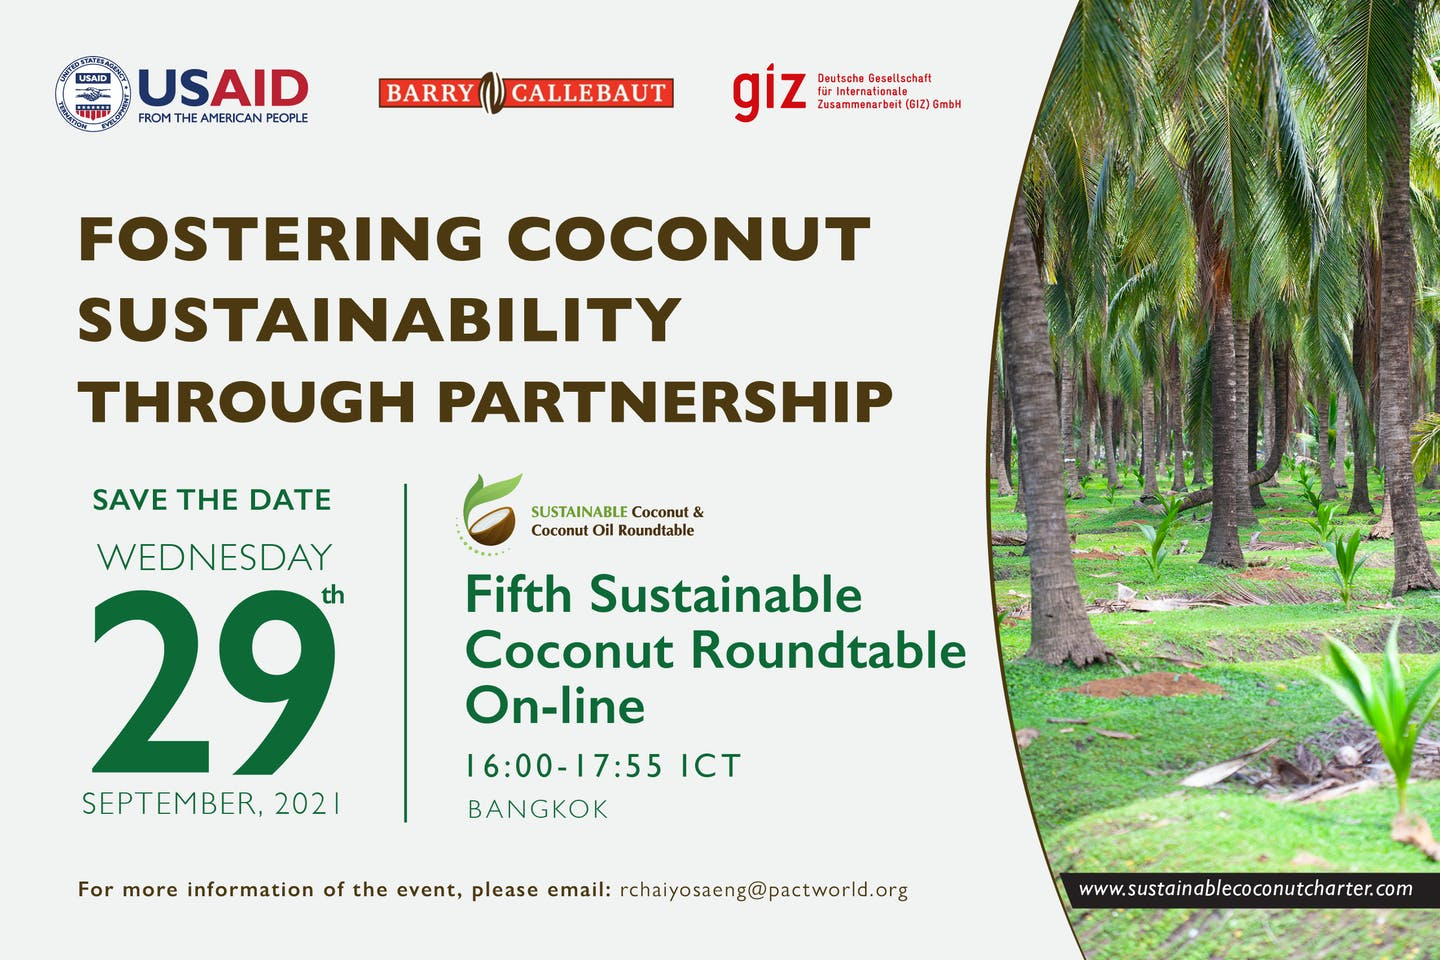 5th Sustainable Coconut Roundtable